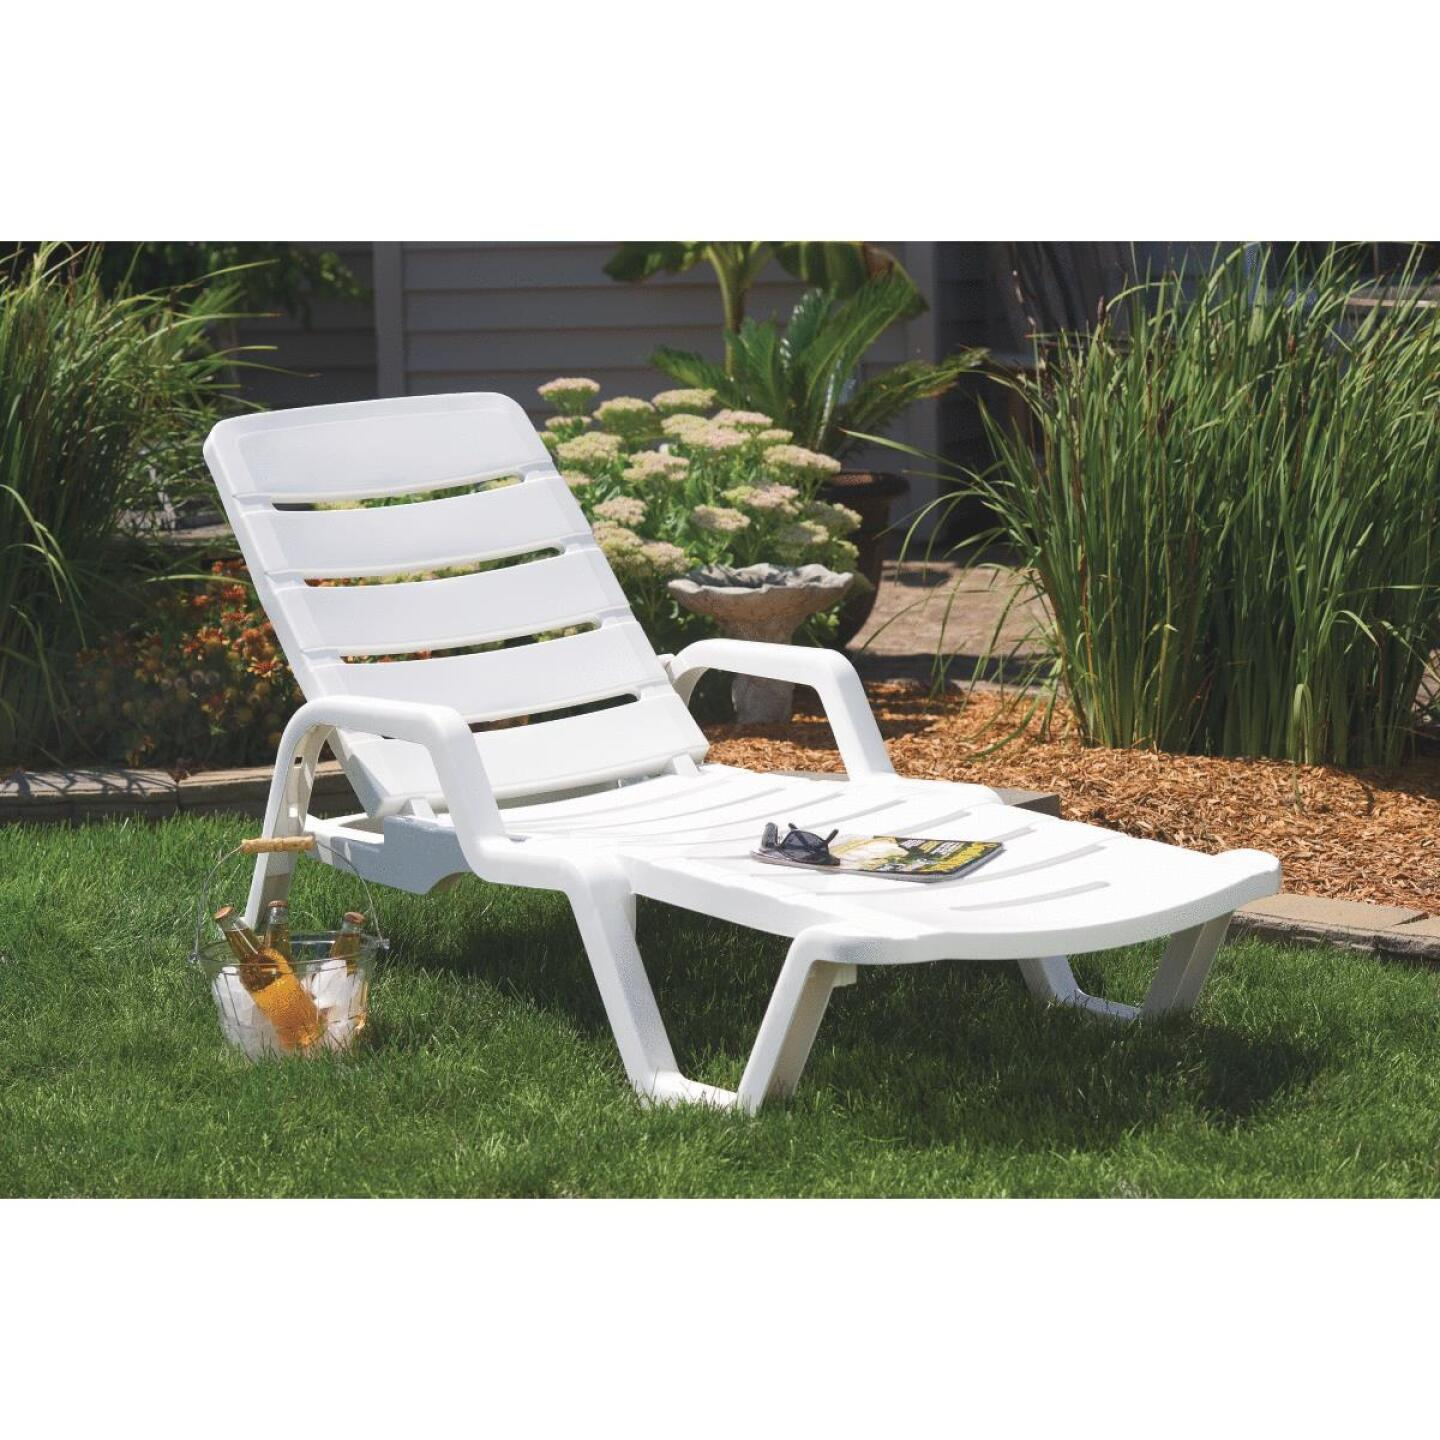 Adams White Resin Adjustable Chaise Lounge Image 2